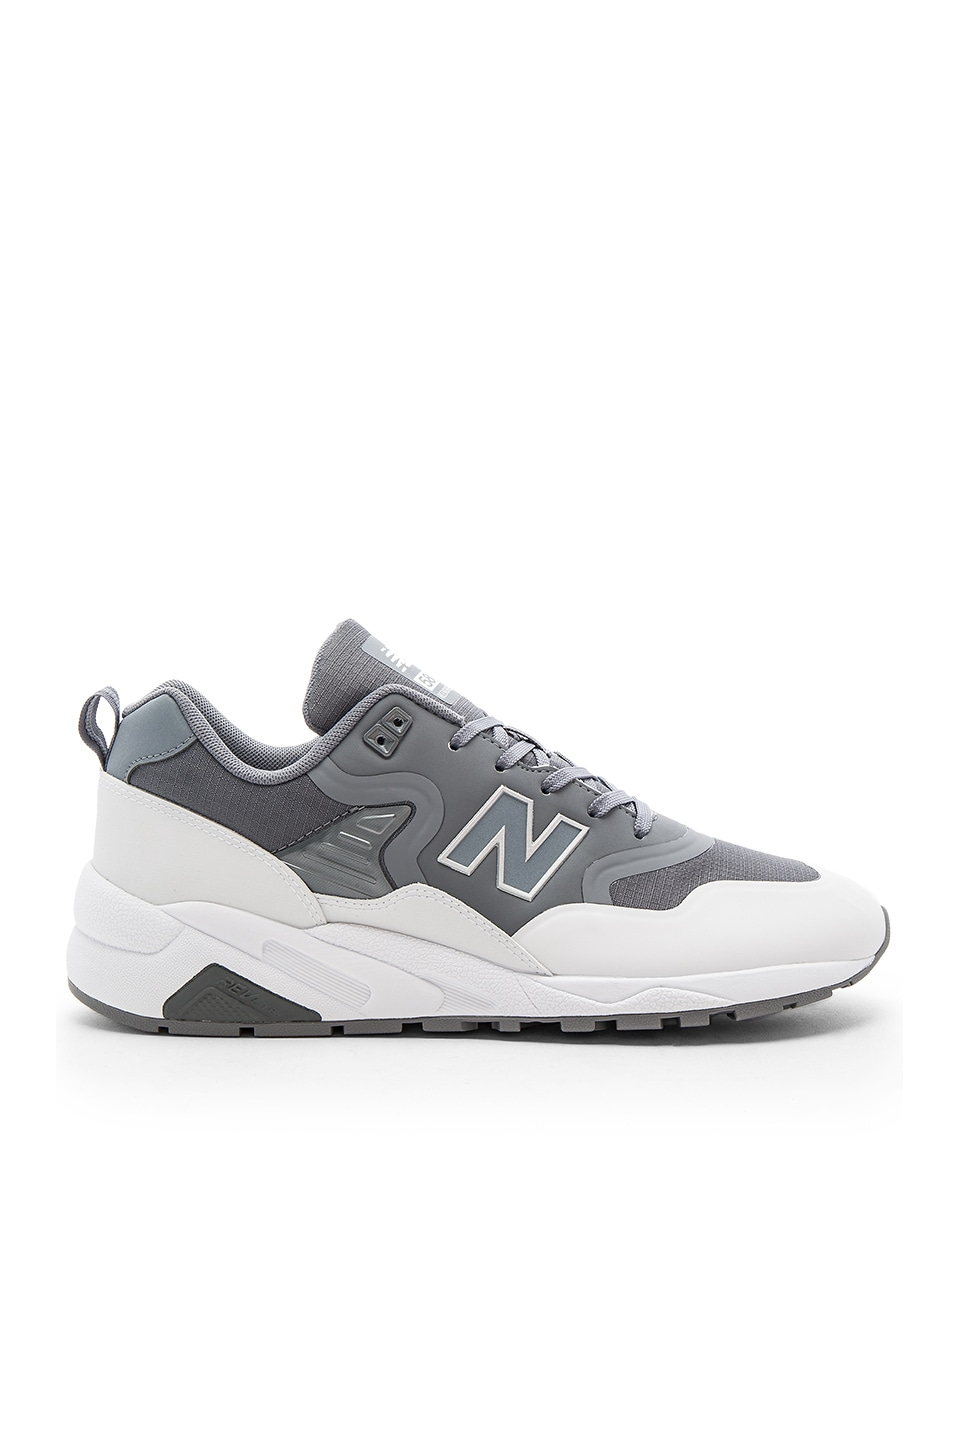 MRT580 by New Balance